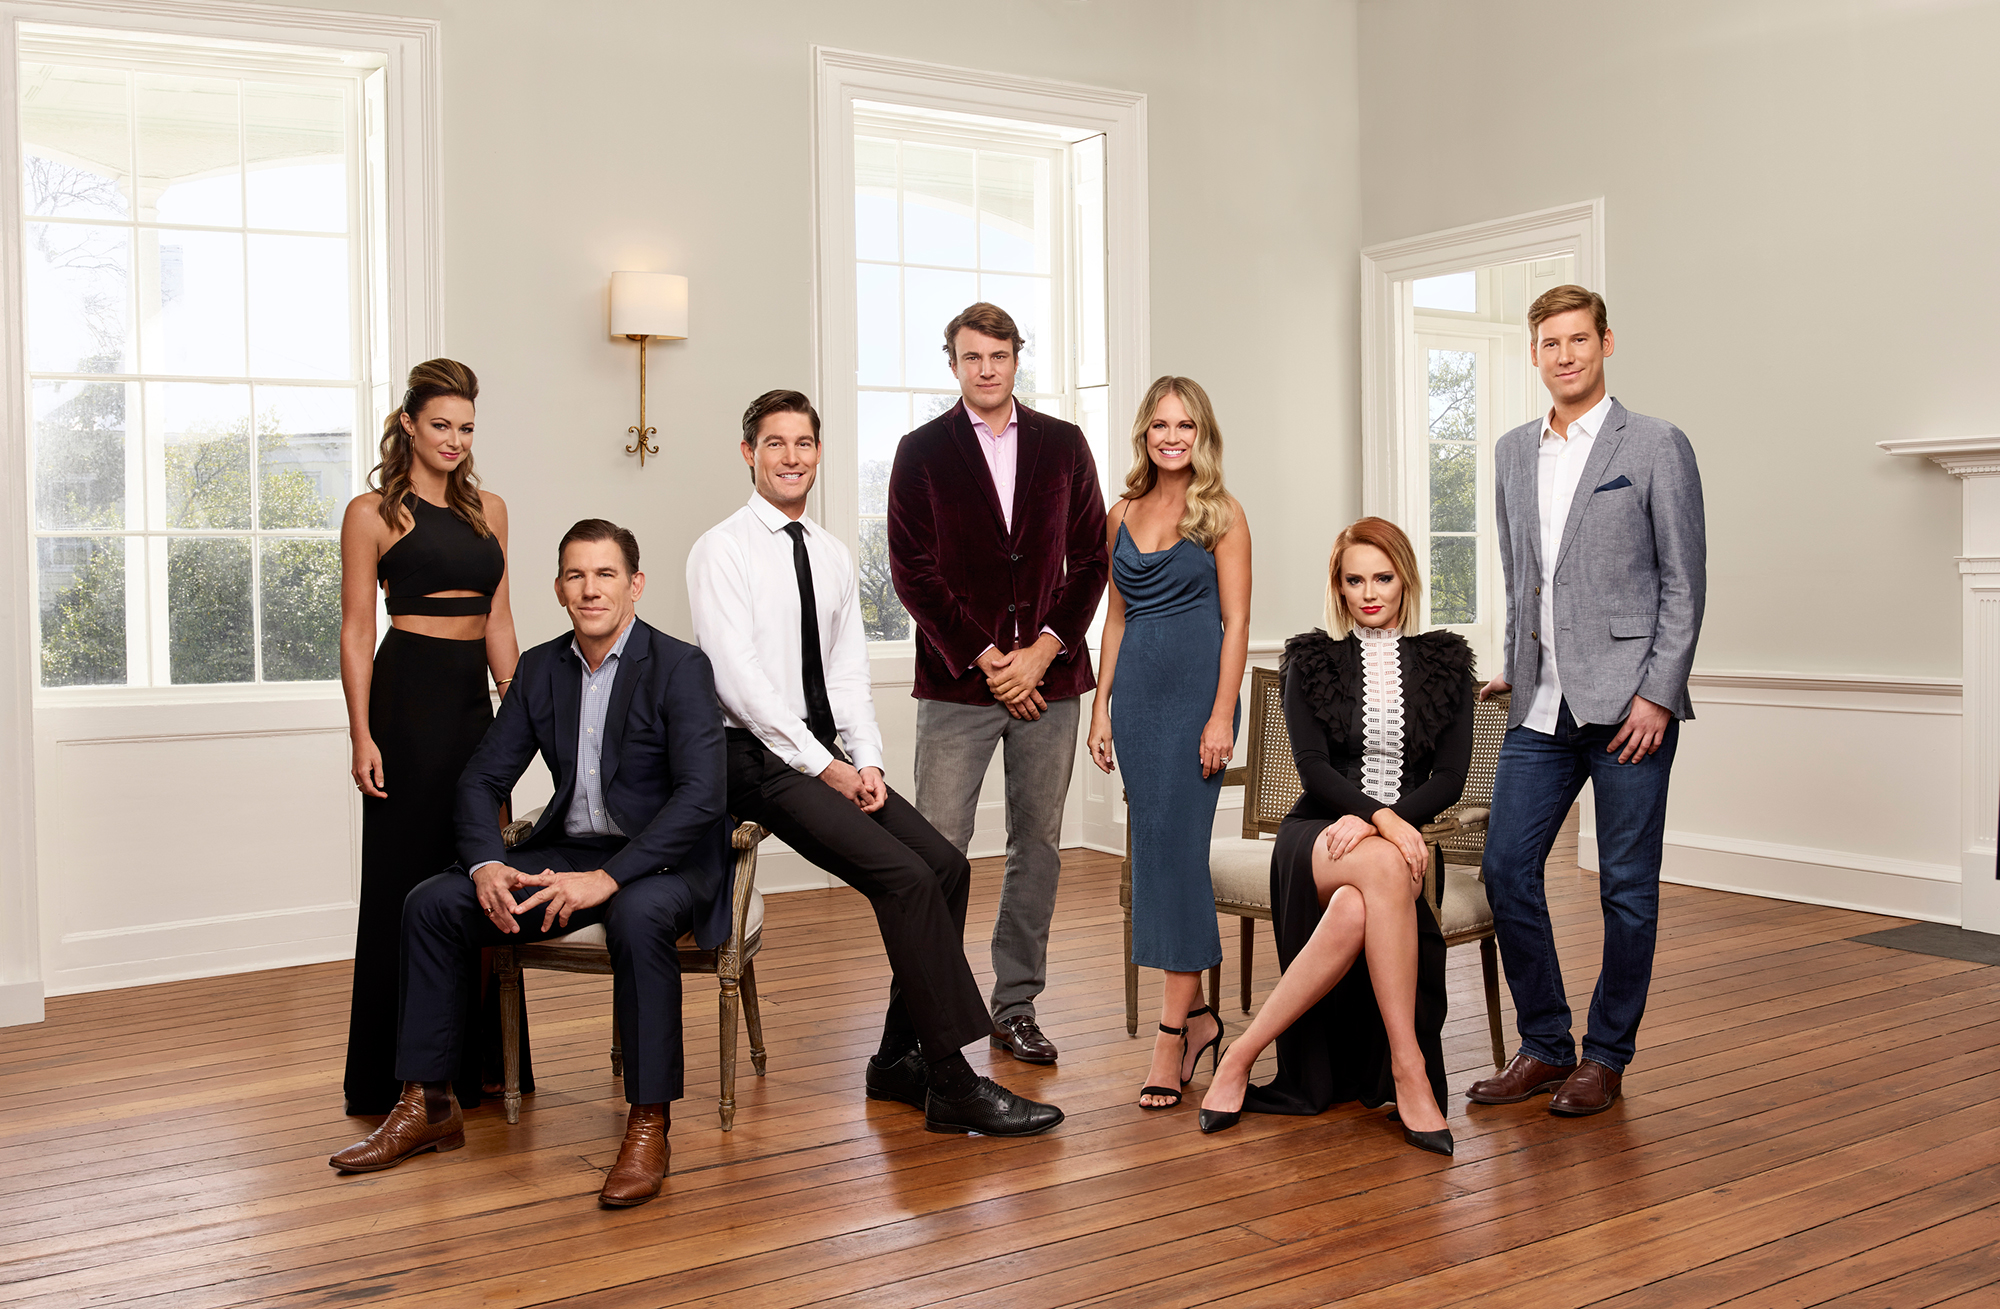 Everything We Know About 'Southern Charm' Season 6 - Chelsea Meissner, Thomas Ravenel, Craig Conover, Shepard Rose, Cameran Eubanks, Kathryn Dennis and Austen Kroll on 'Southern Charm.'